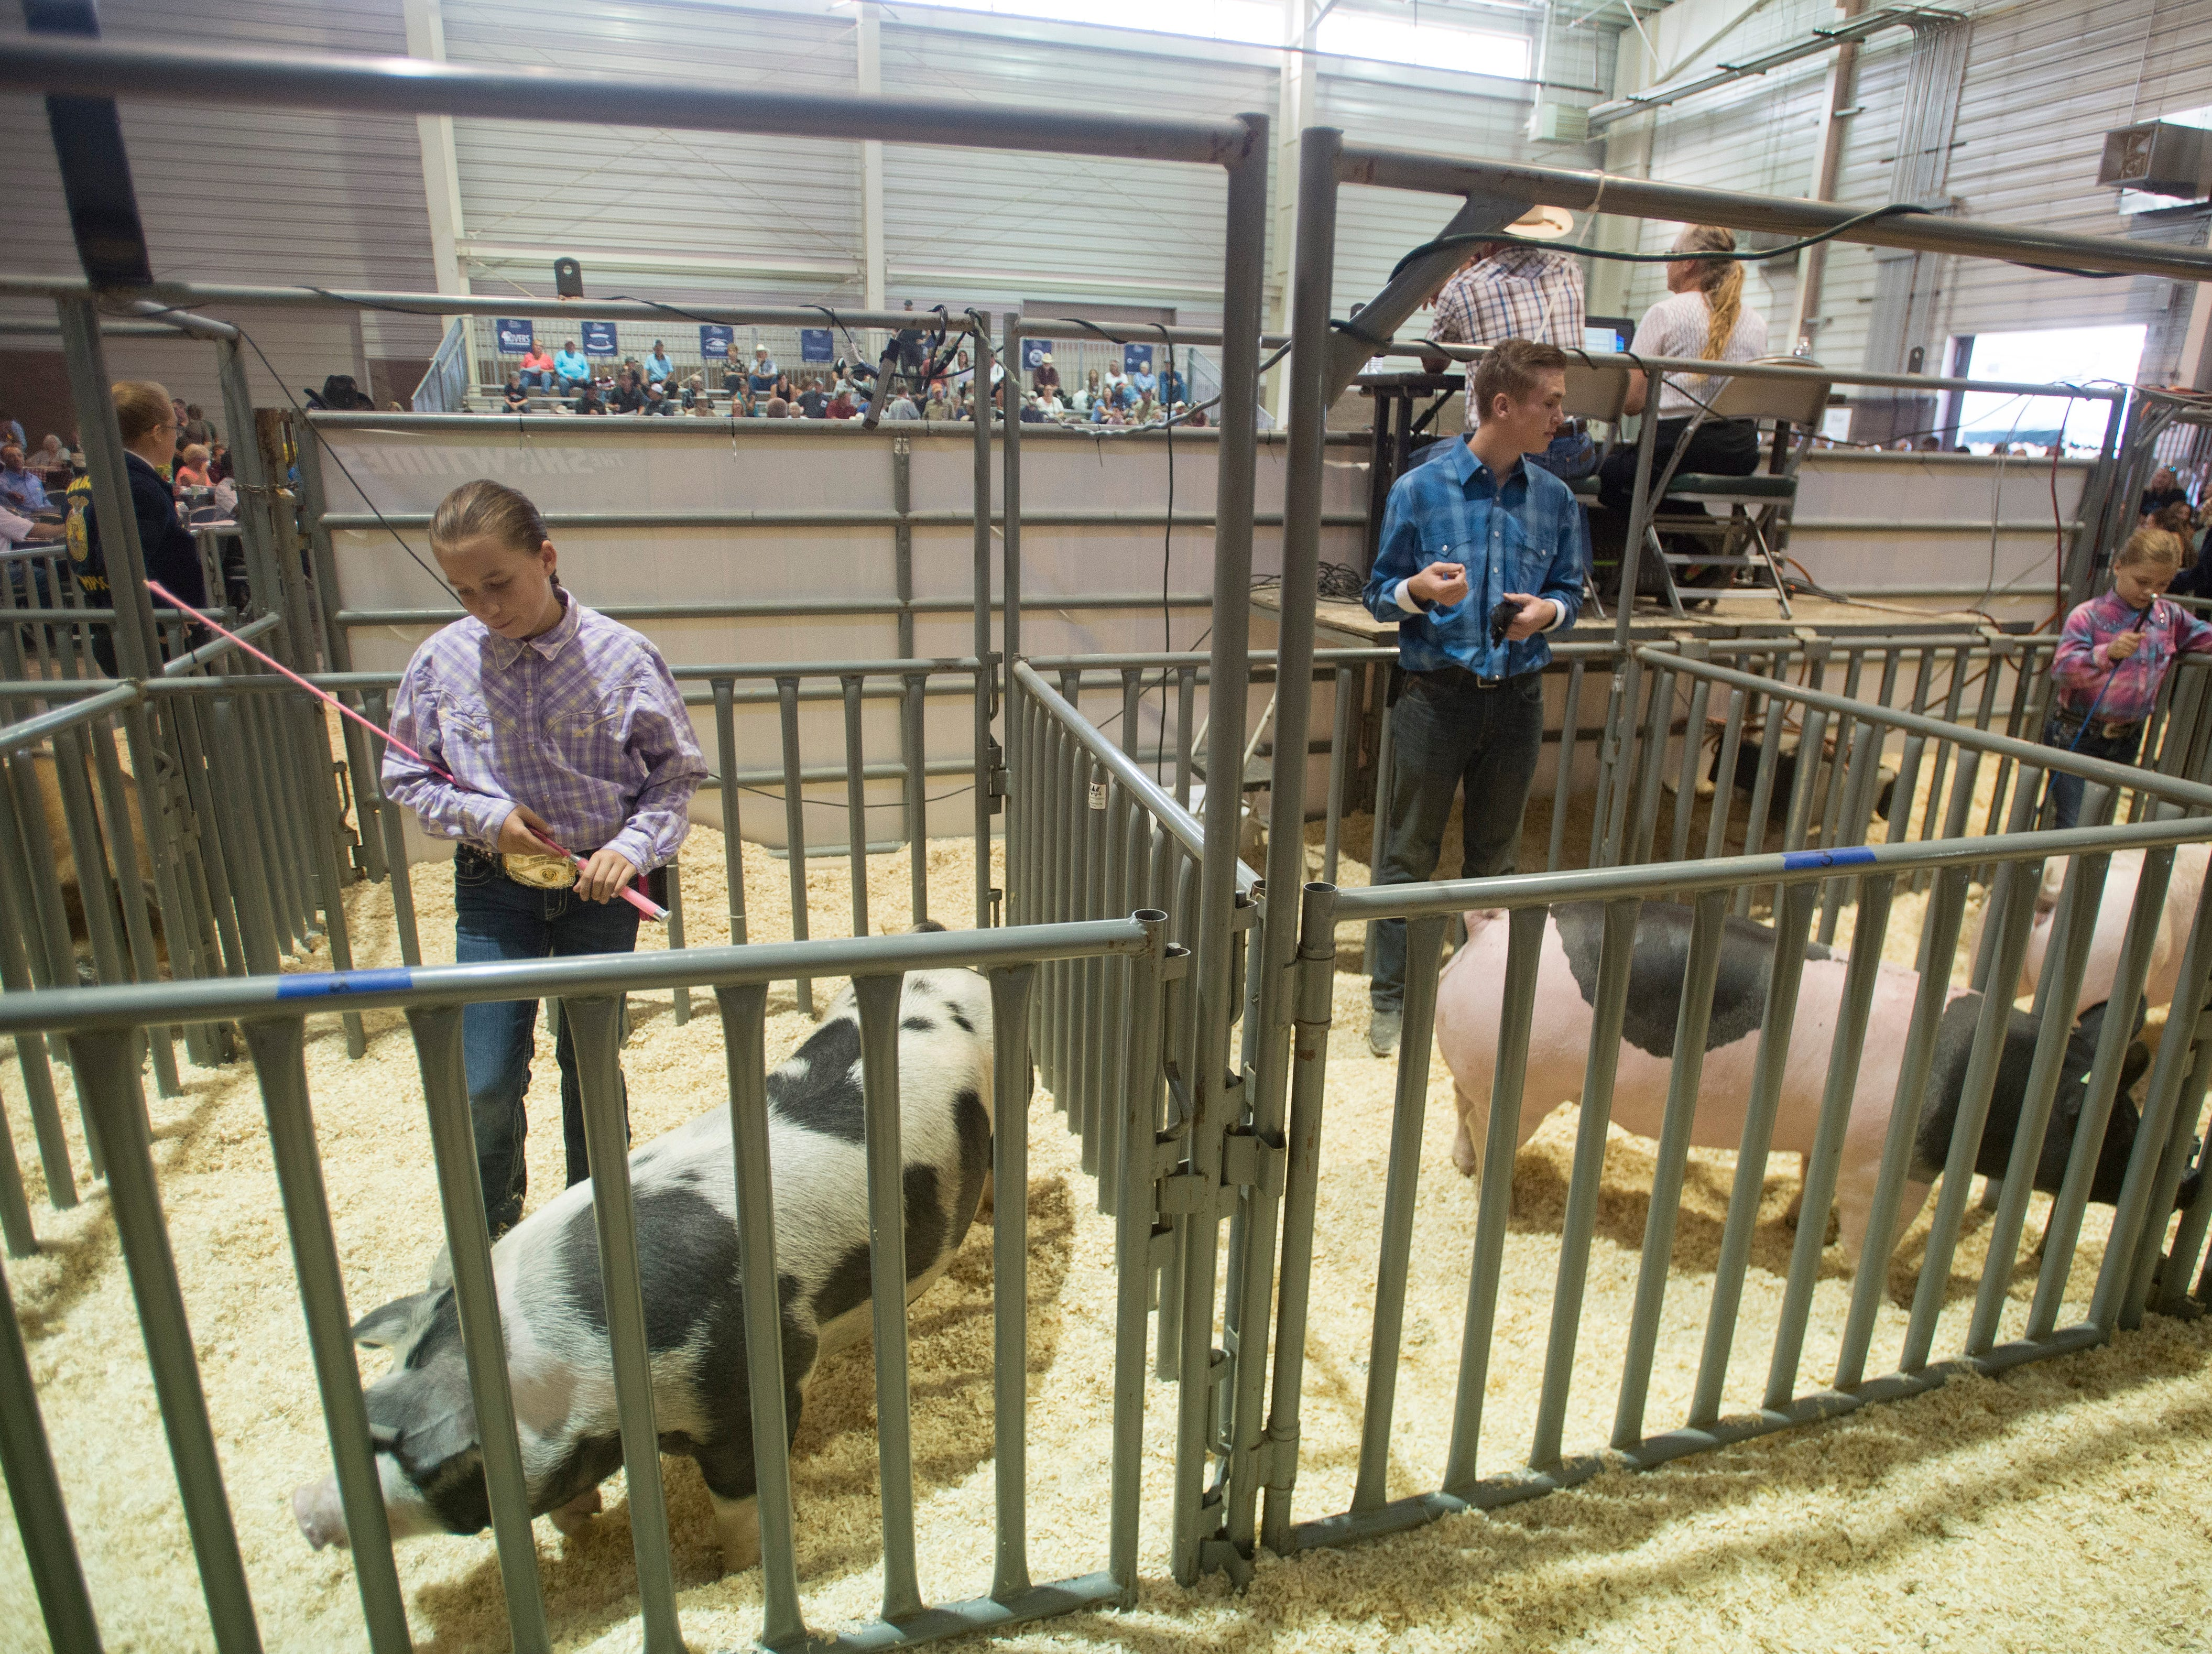 Pigs are held in pens before bidding takes place at the Larimer County Fair Youth Livestock Sale at The Ranch in Loveland on Wednesday, August 8, 2018.